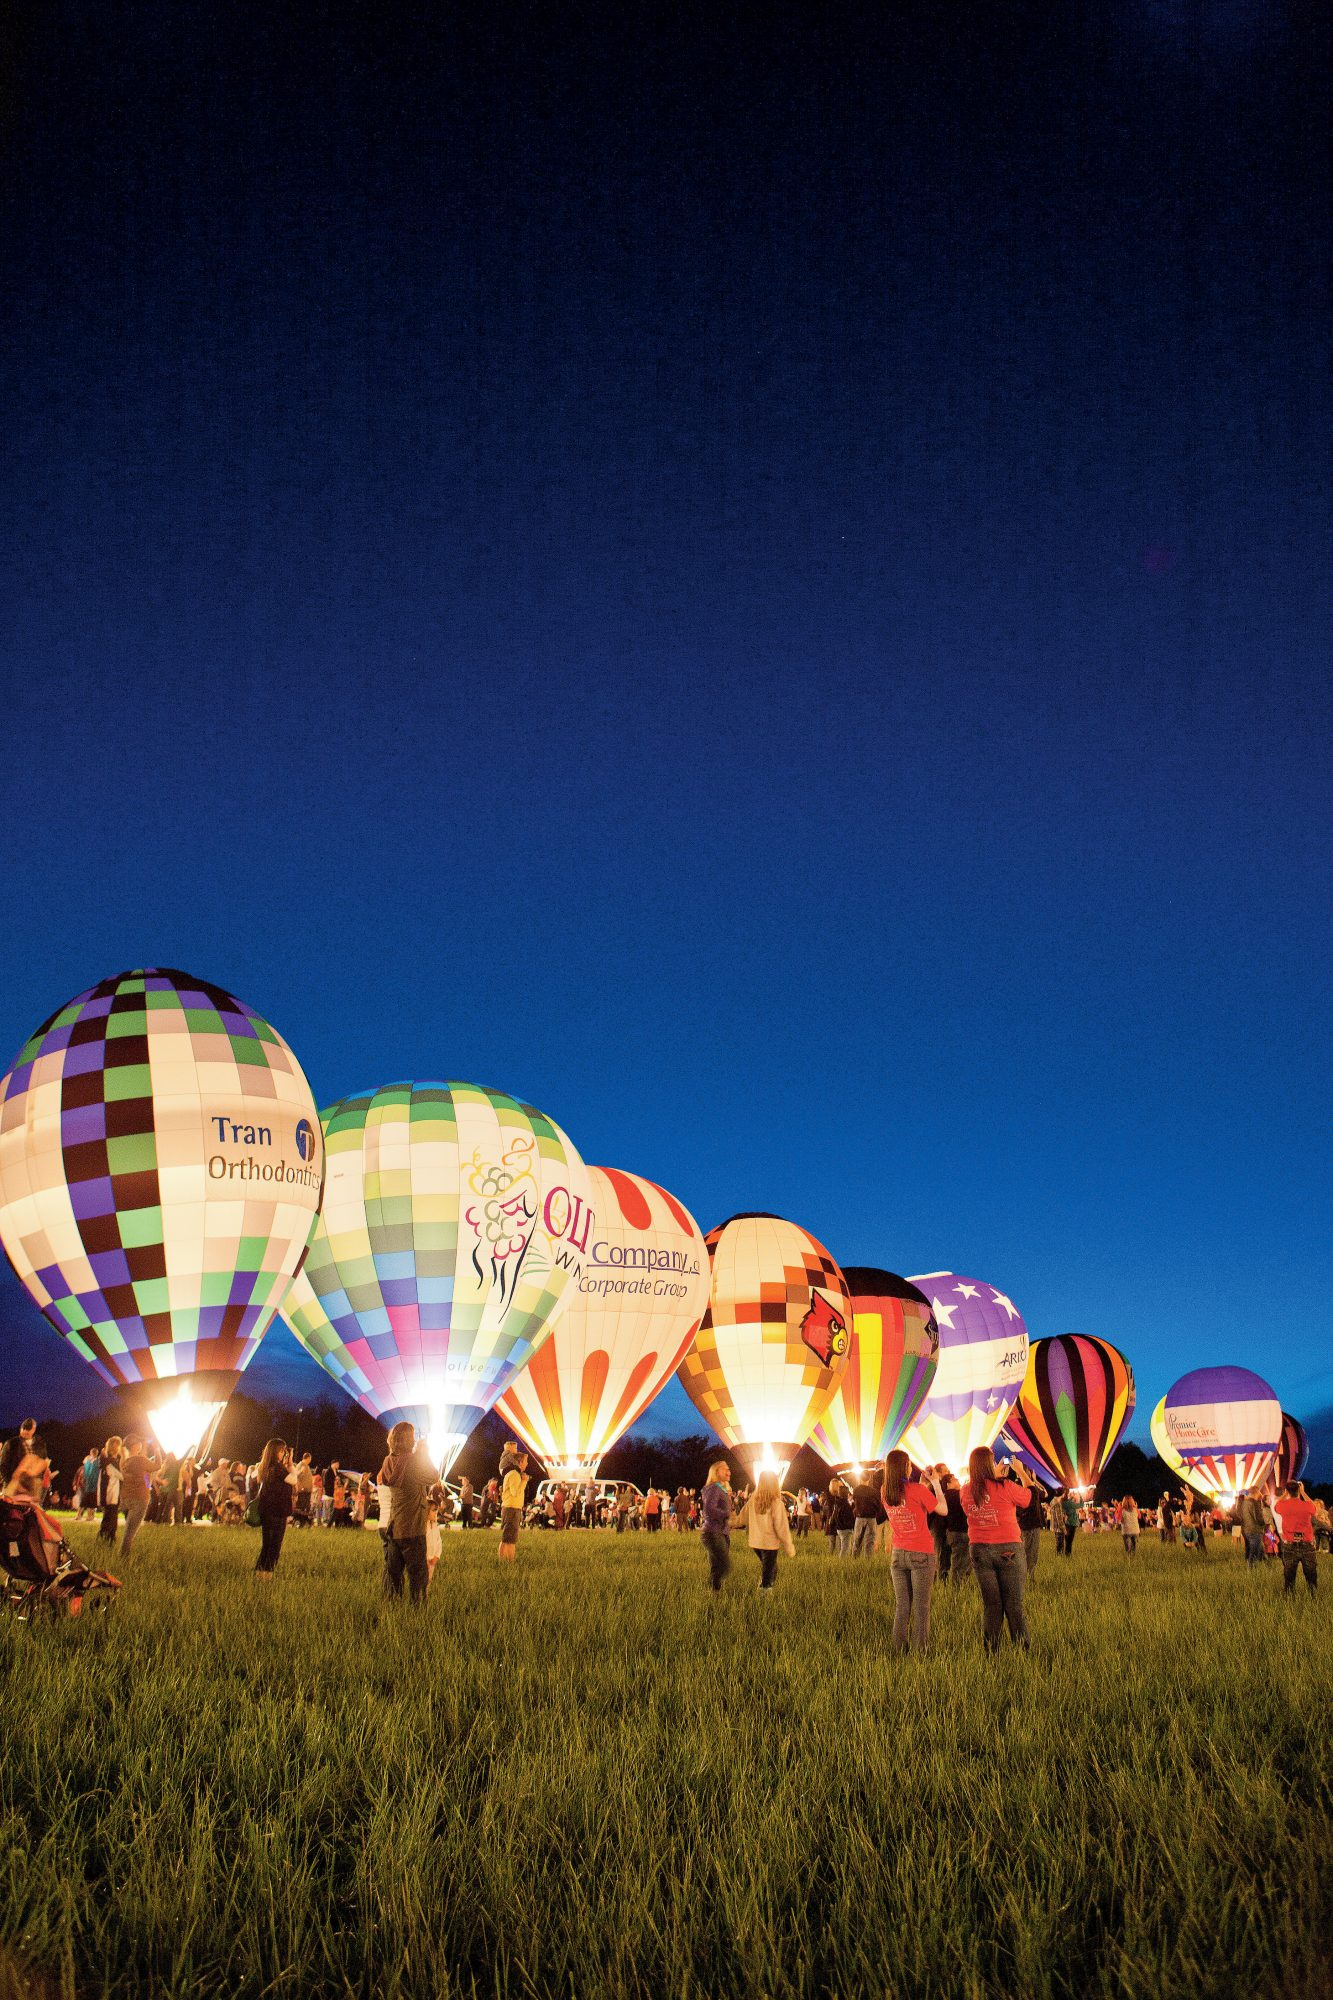 The Great Balloon Glow